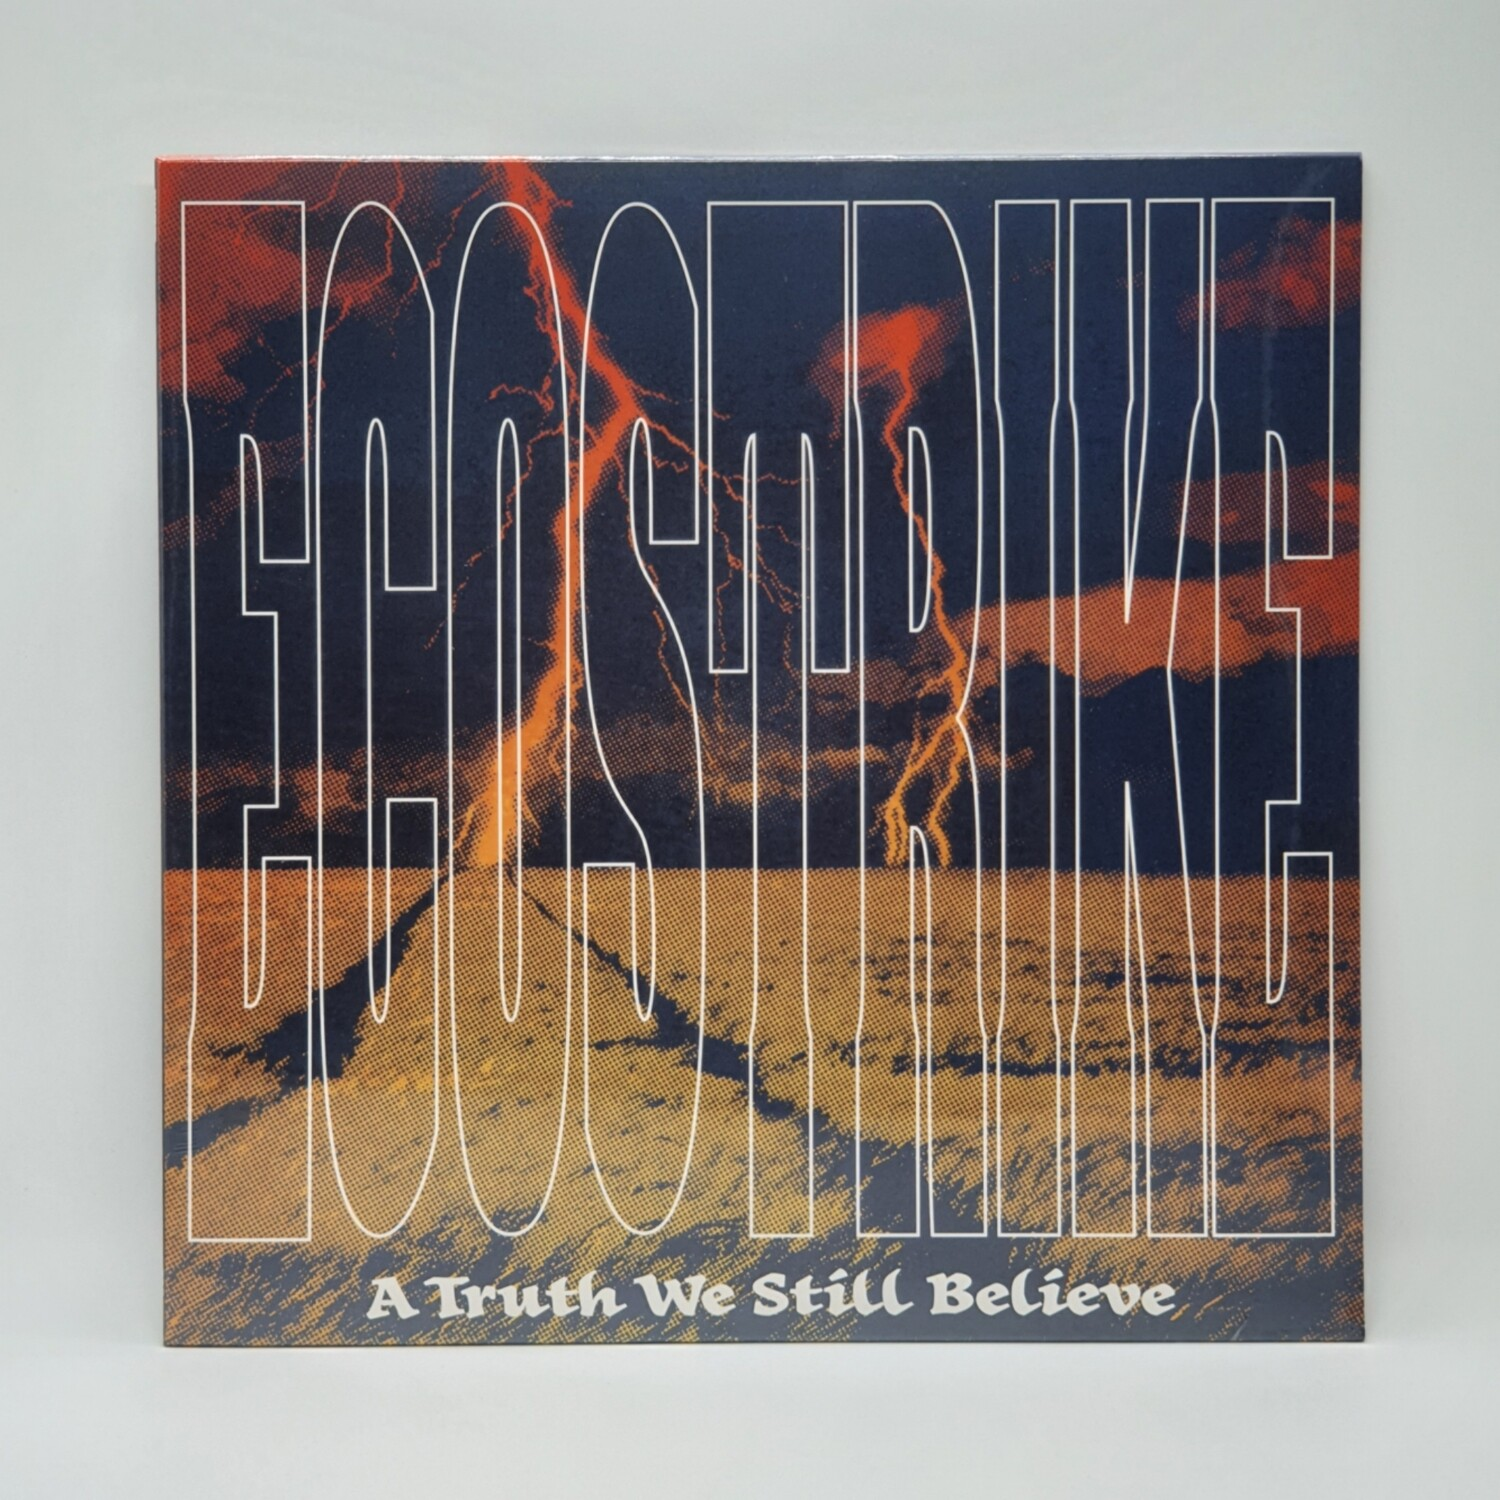 ECOSTRIKE -A TRUTH WE STILL BELIEVE- LP (COLOR VINYL)